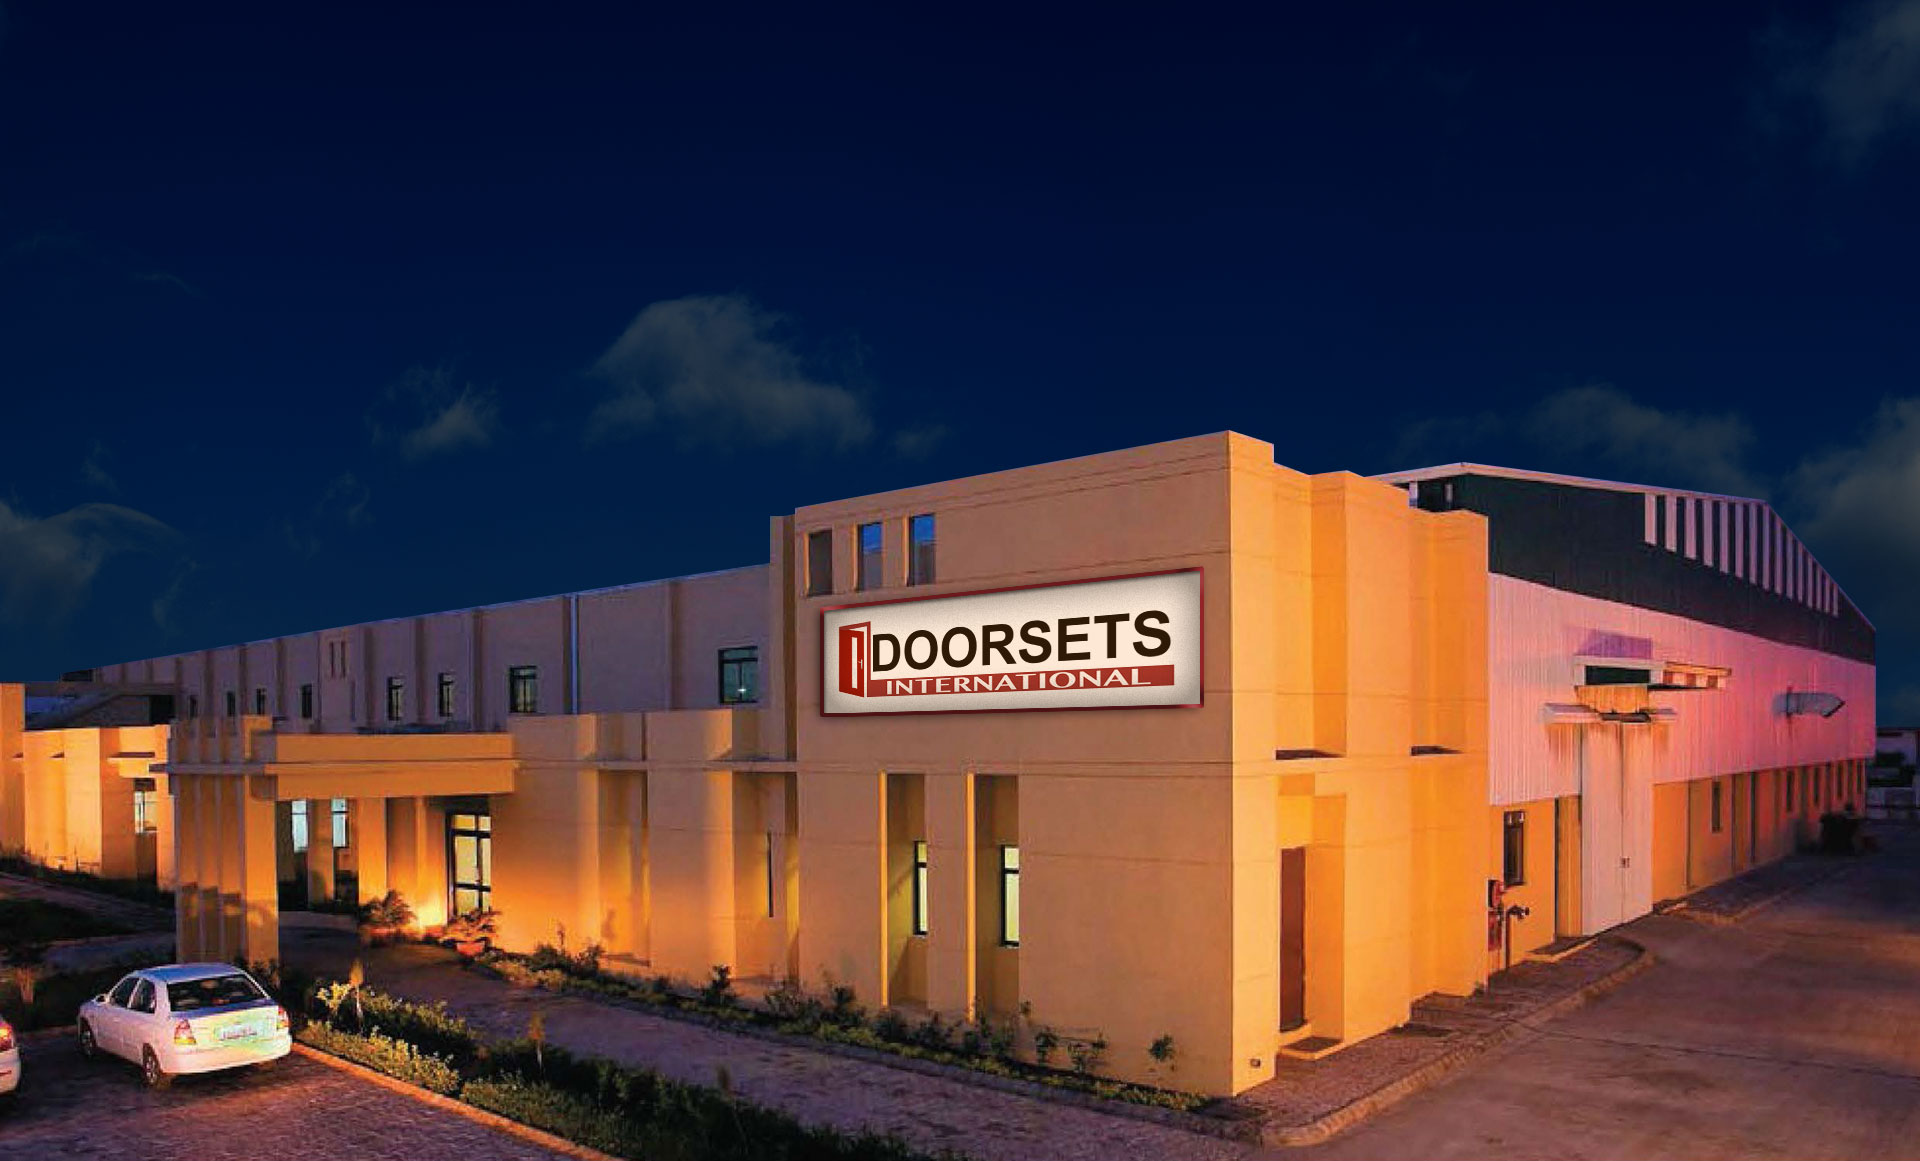 ... high performance acoustics and severe duty doors. Doorsets International will deliver accurate and cost effective door solutions on time and in full. & Doorsets International | Laidlaw.ae